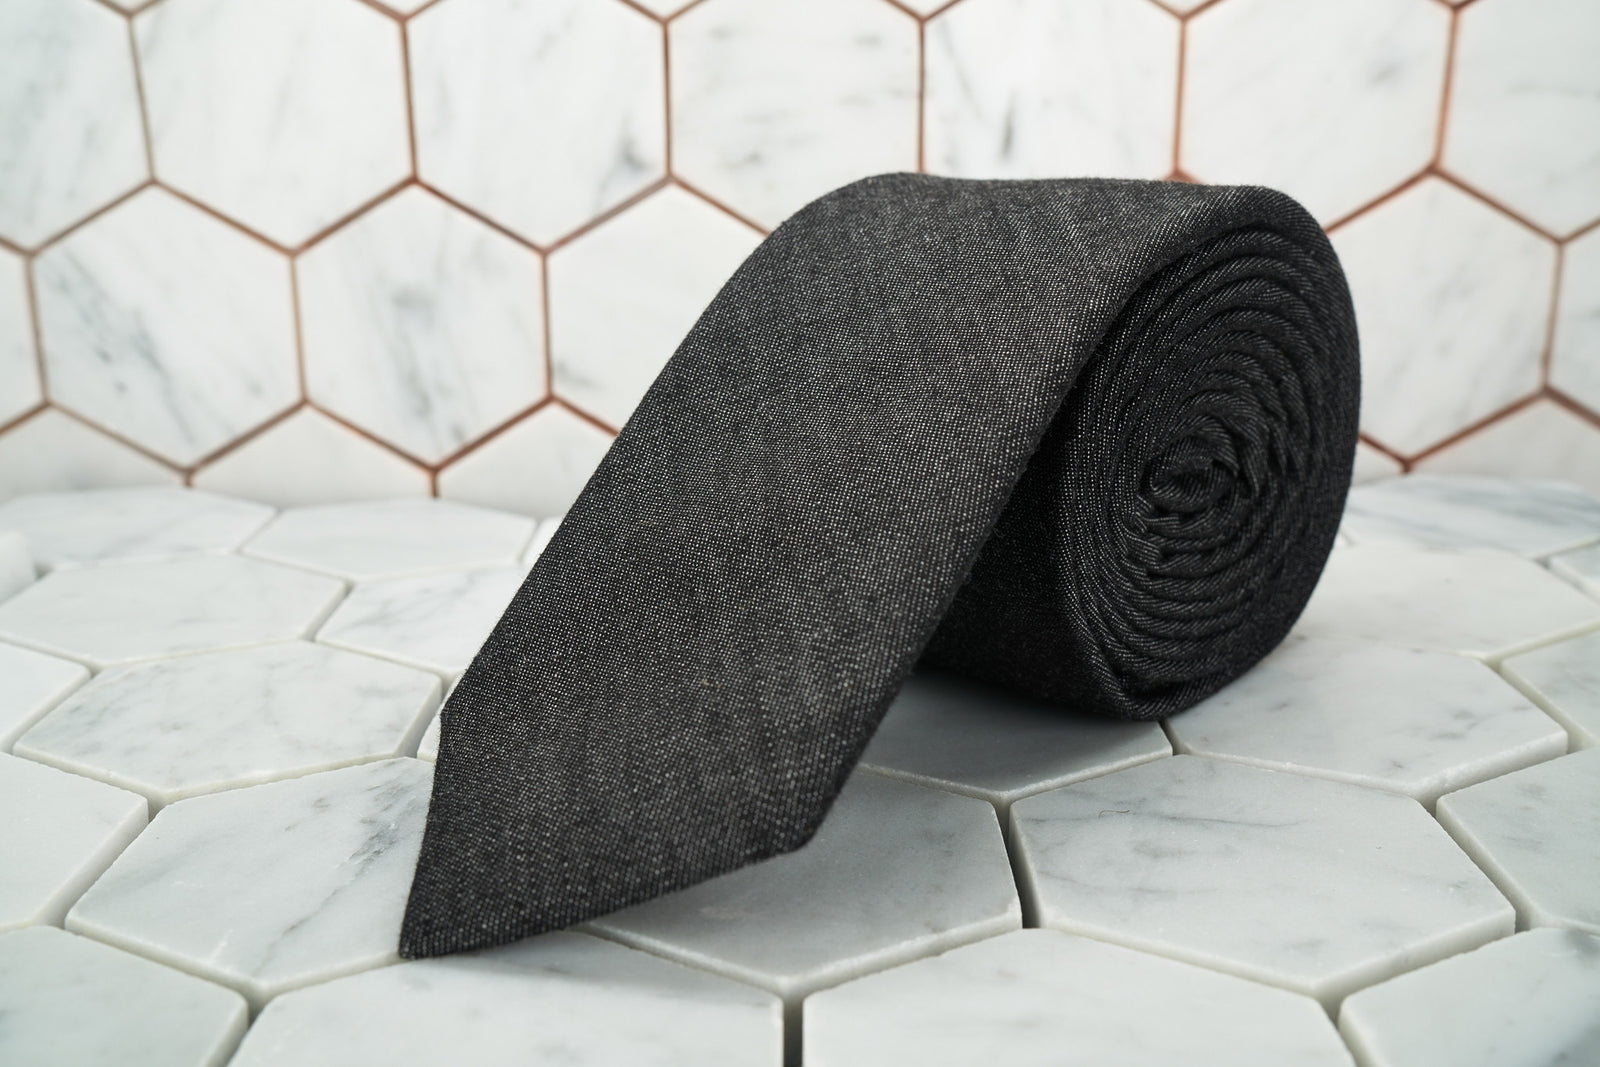 A black denim necktie made by Dear Martian, Brooklyn is shown rolled up and displayed against a hexagonal background.